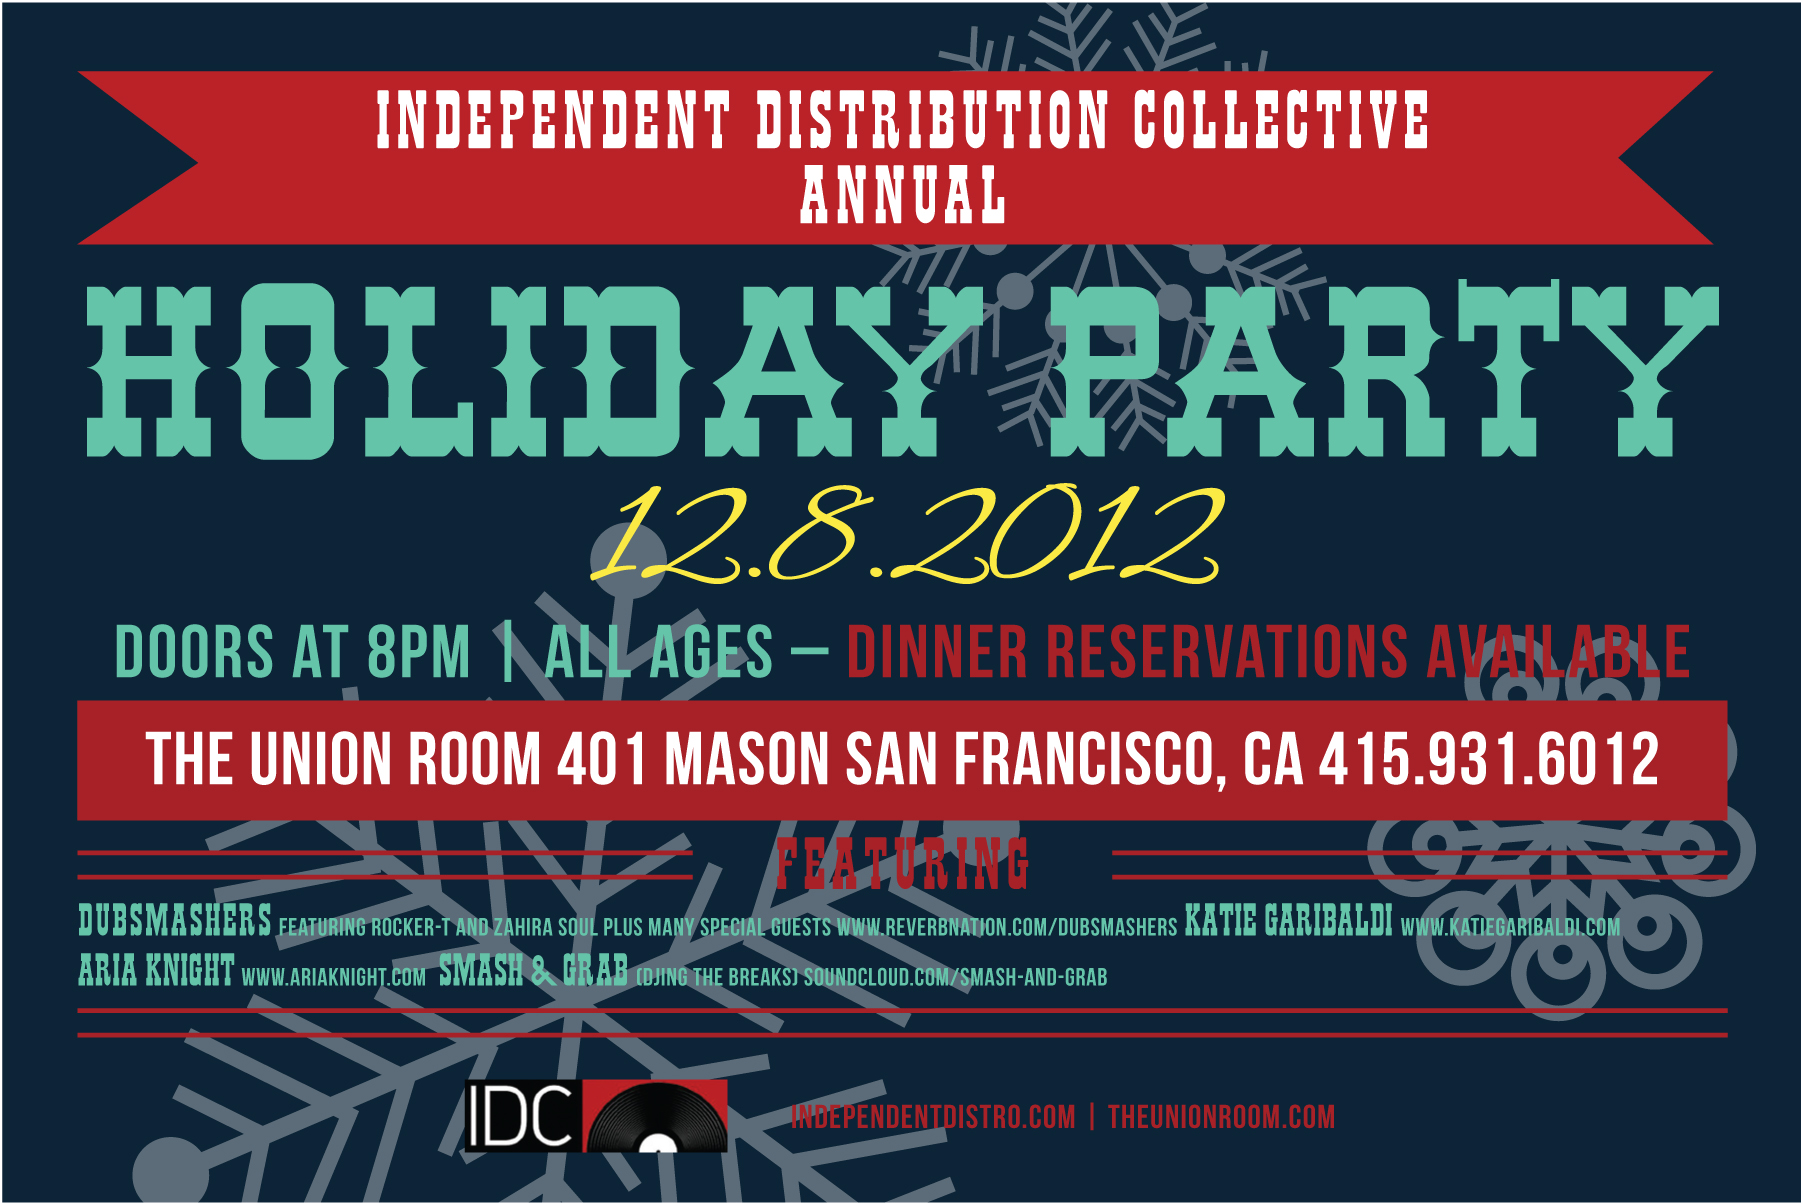 idc holiday party flyer independent distribution